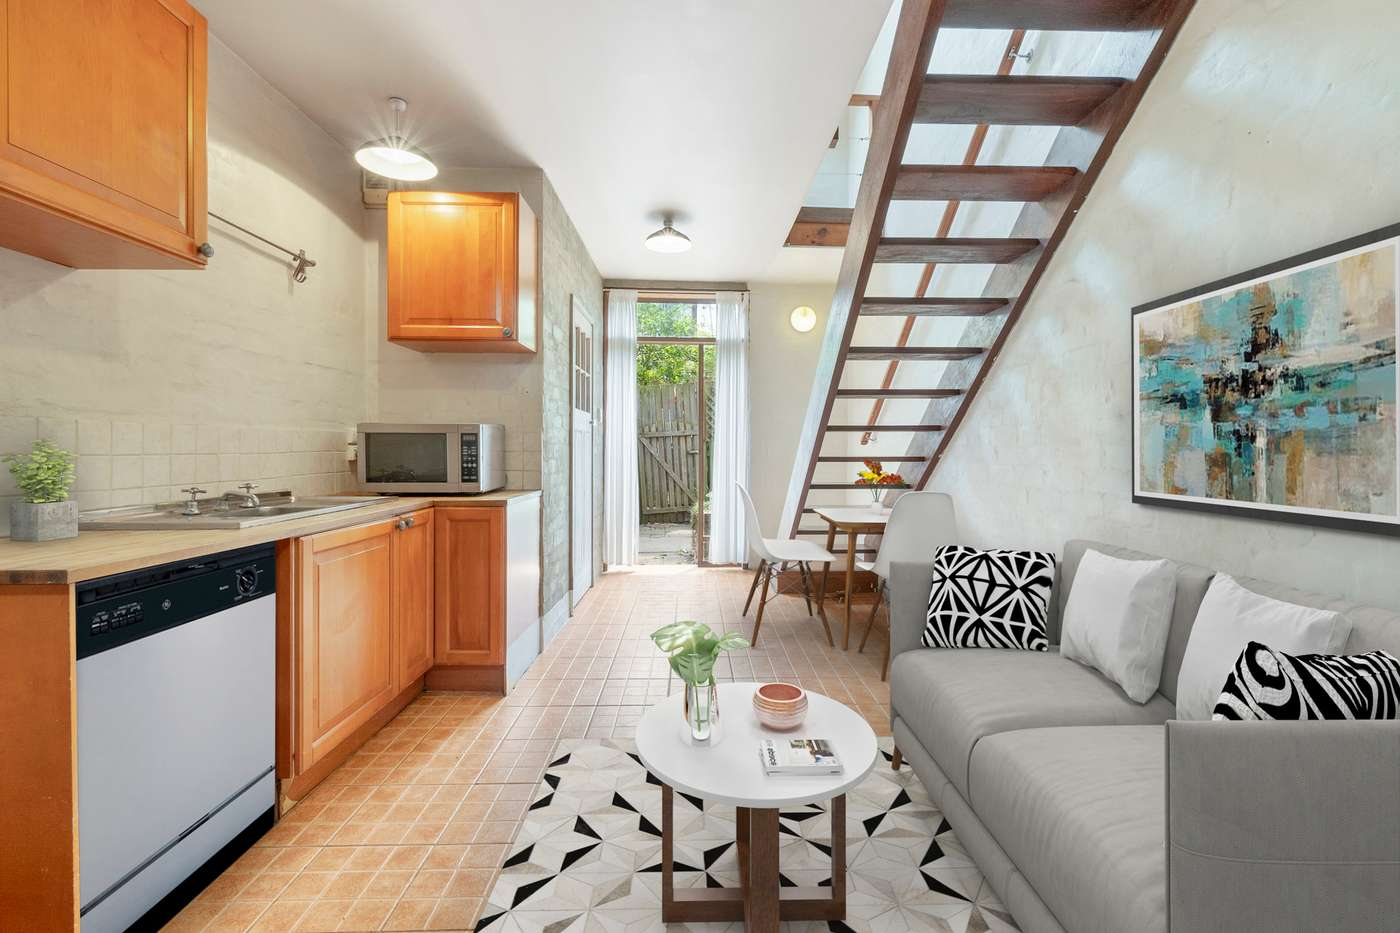 Main view of Homely house listing, 6 Phelps Lane, Surry Hills, NSW 2010